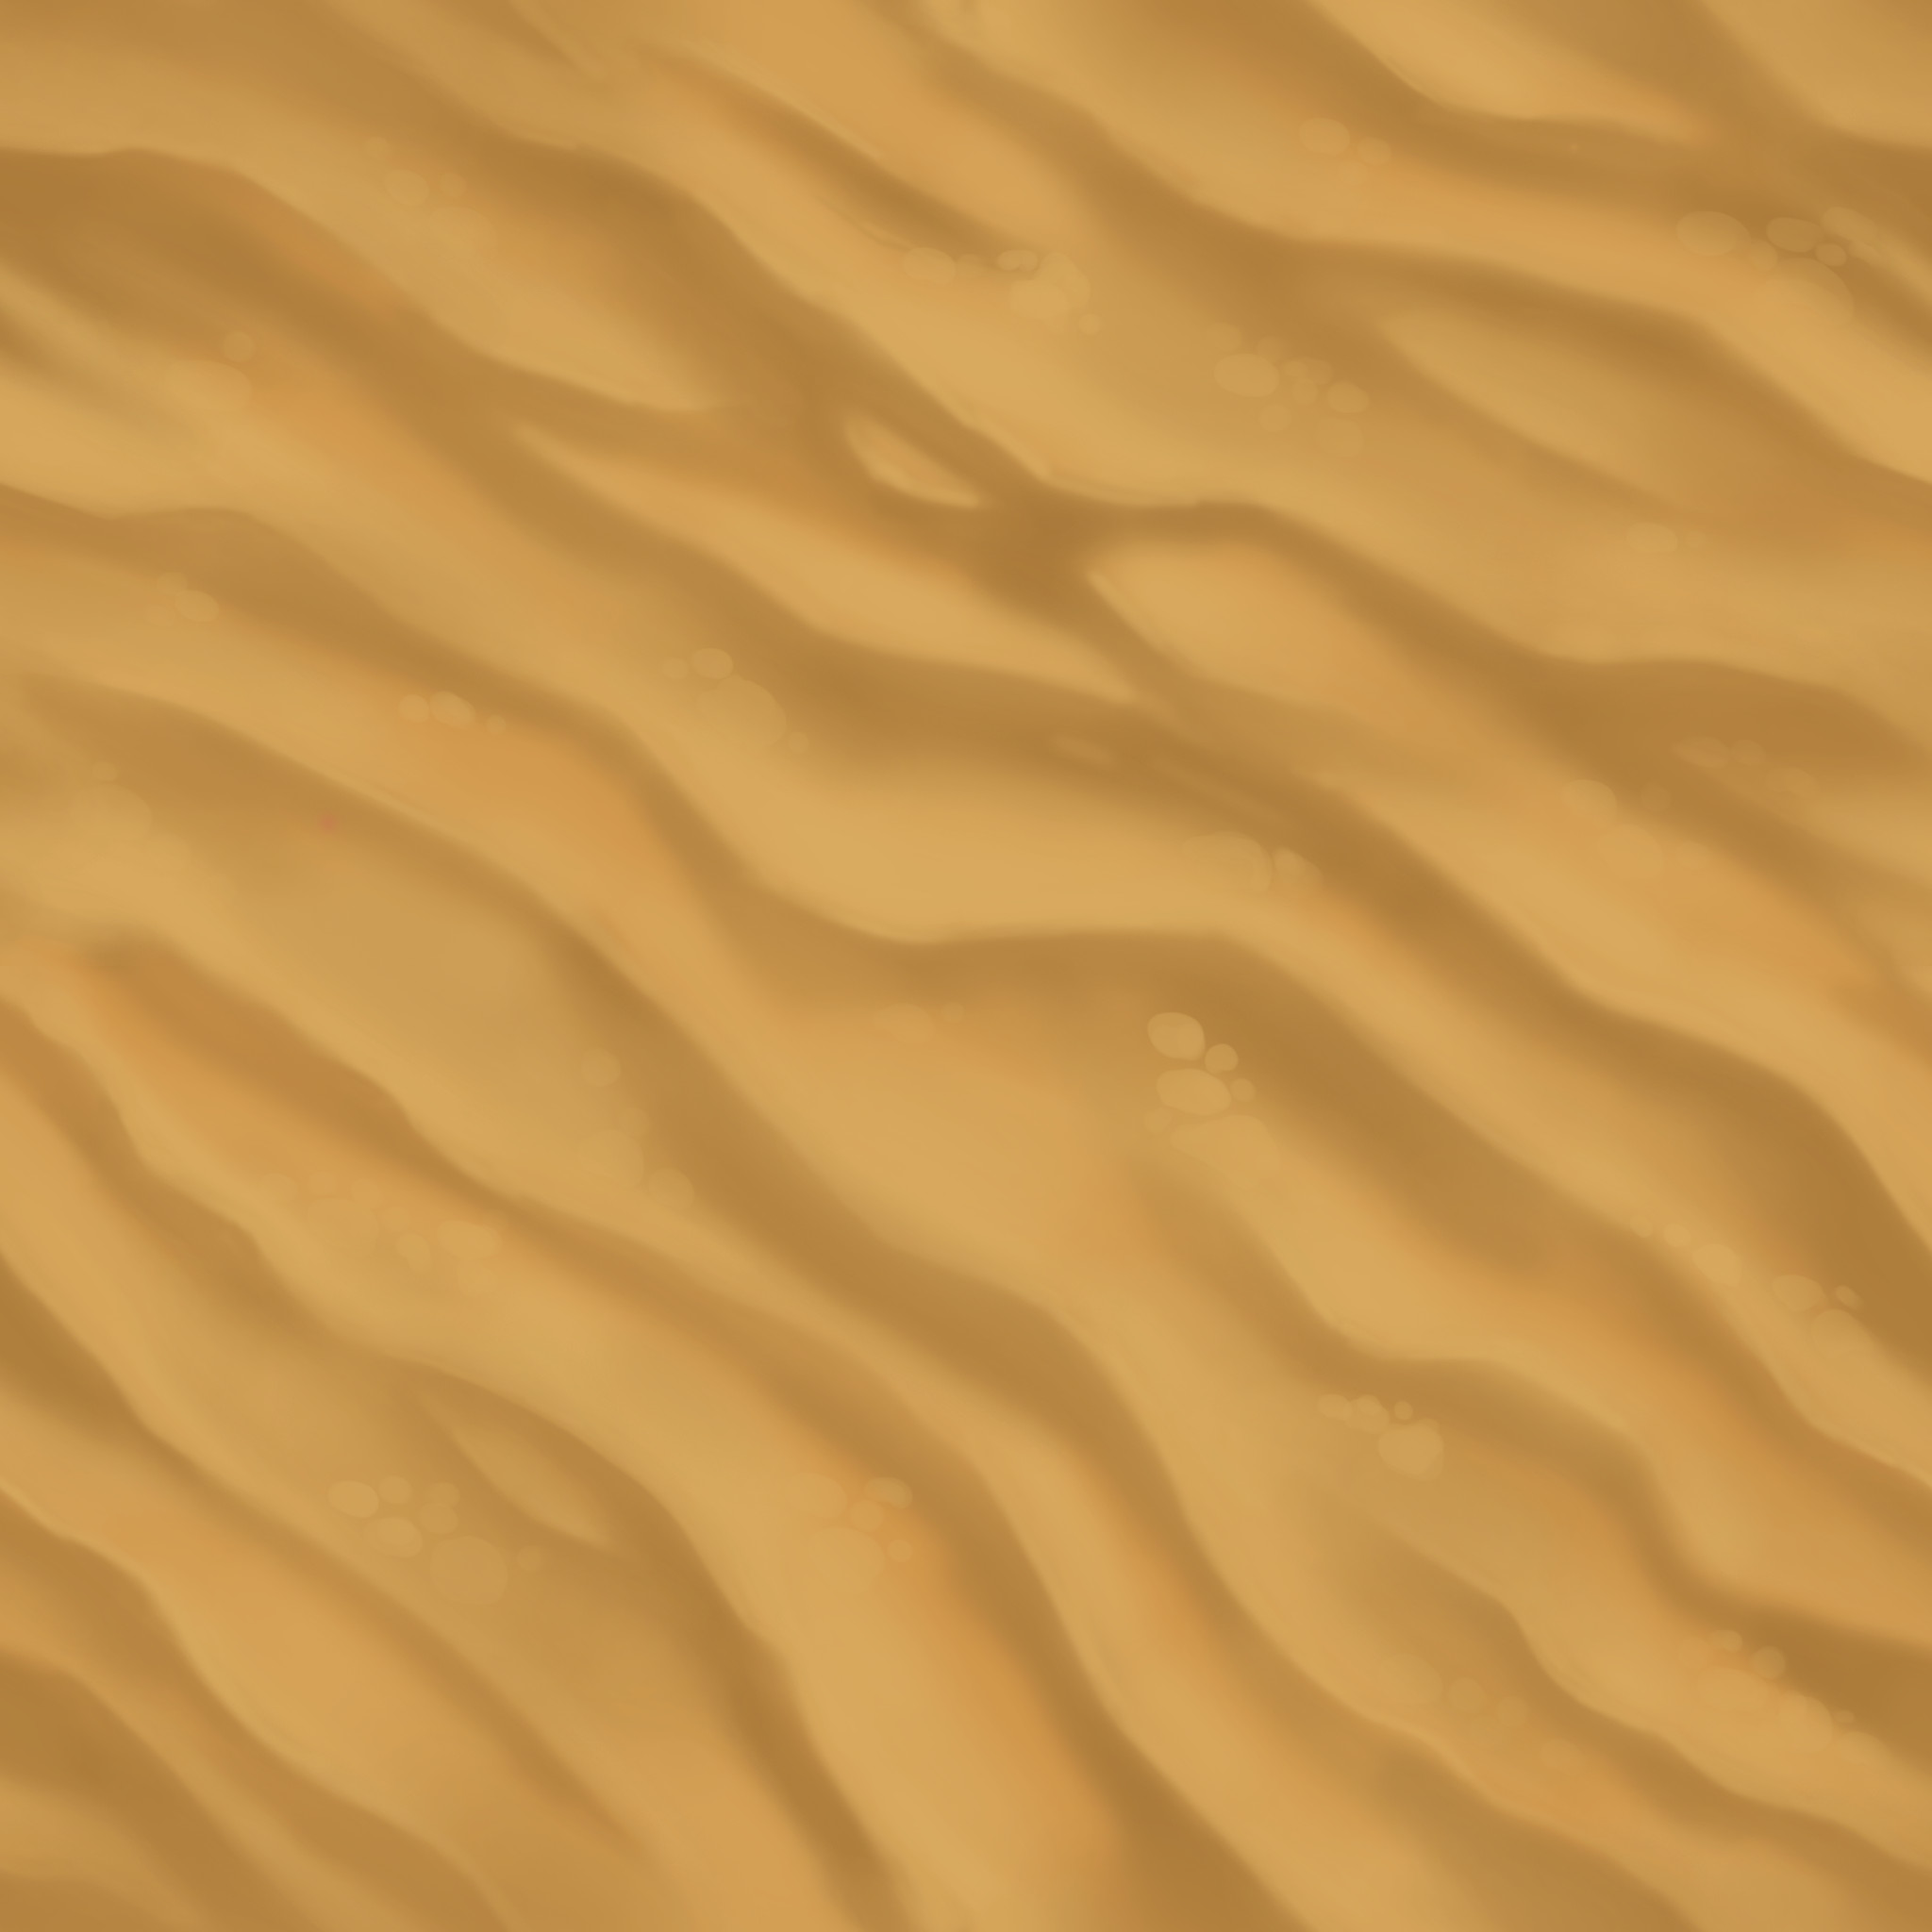 Hand-Painted/Tiling Sand Texture